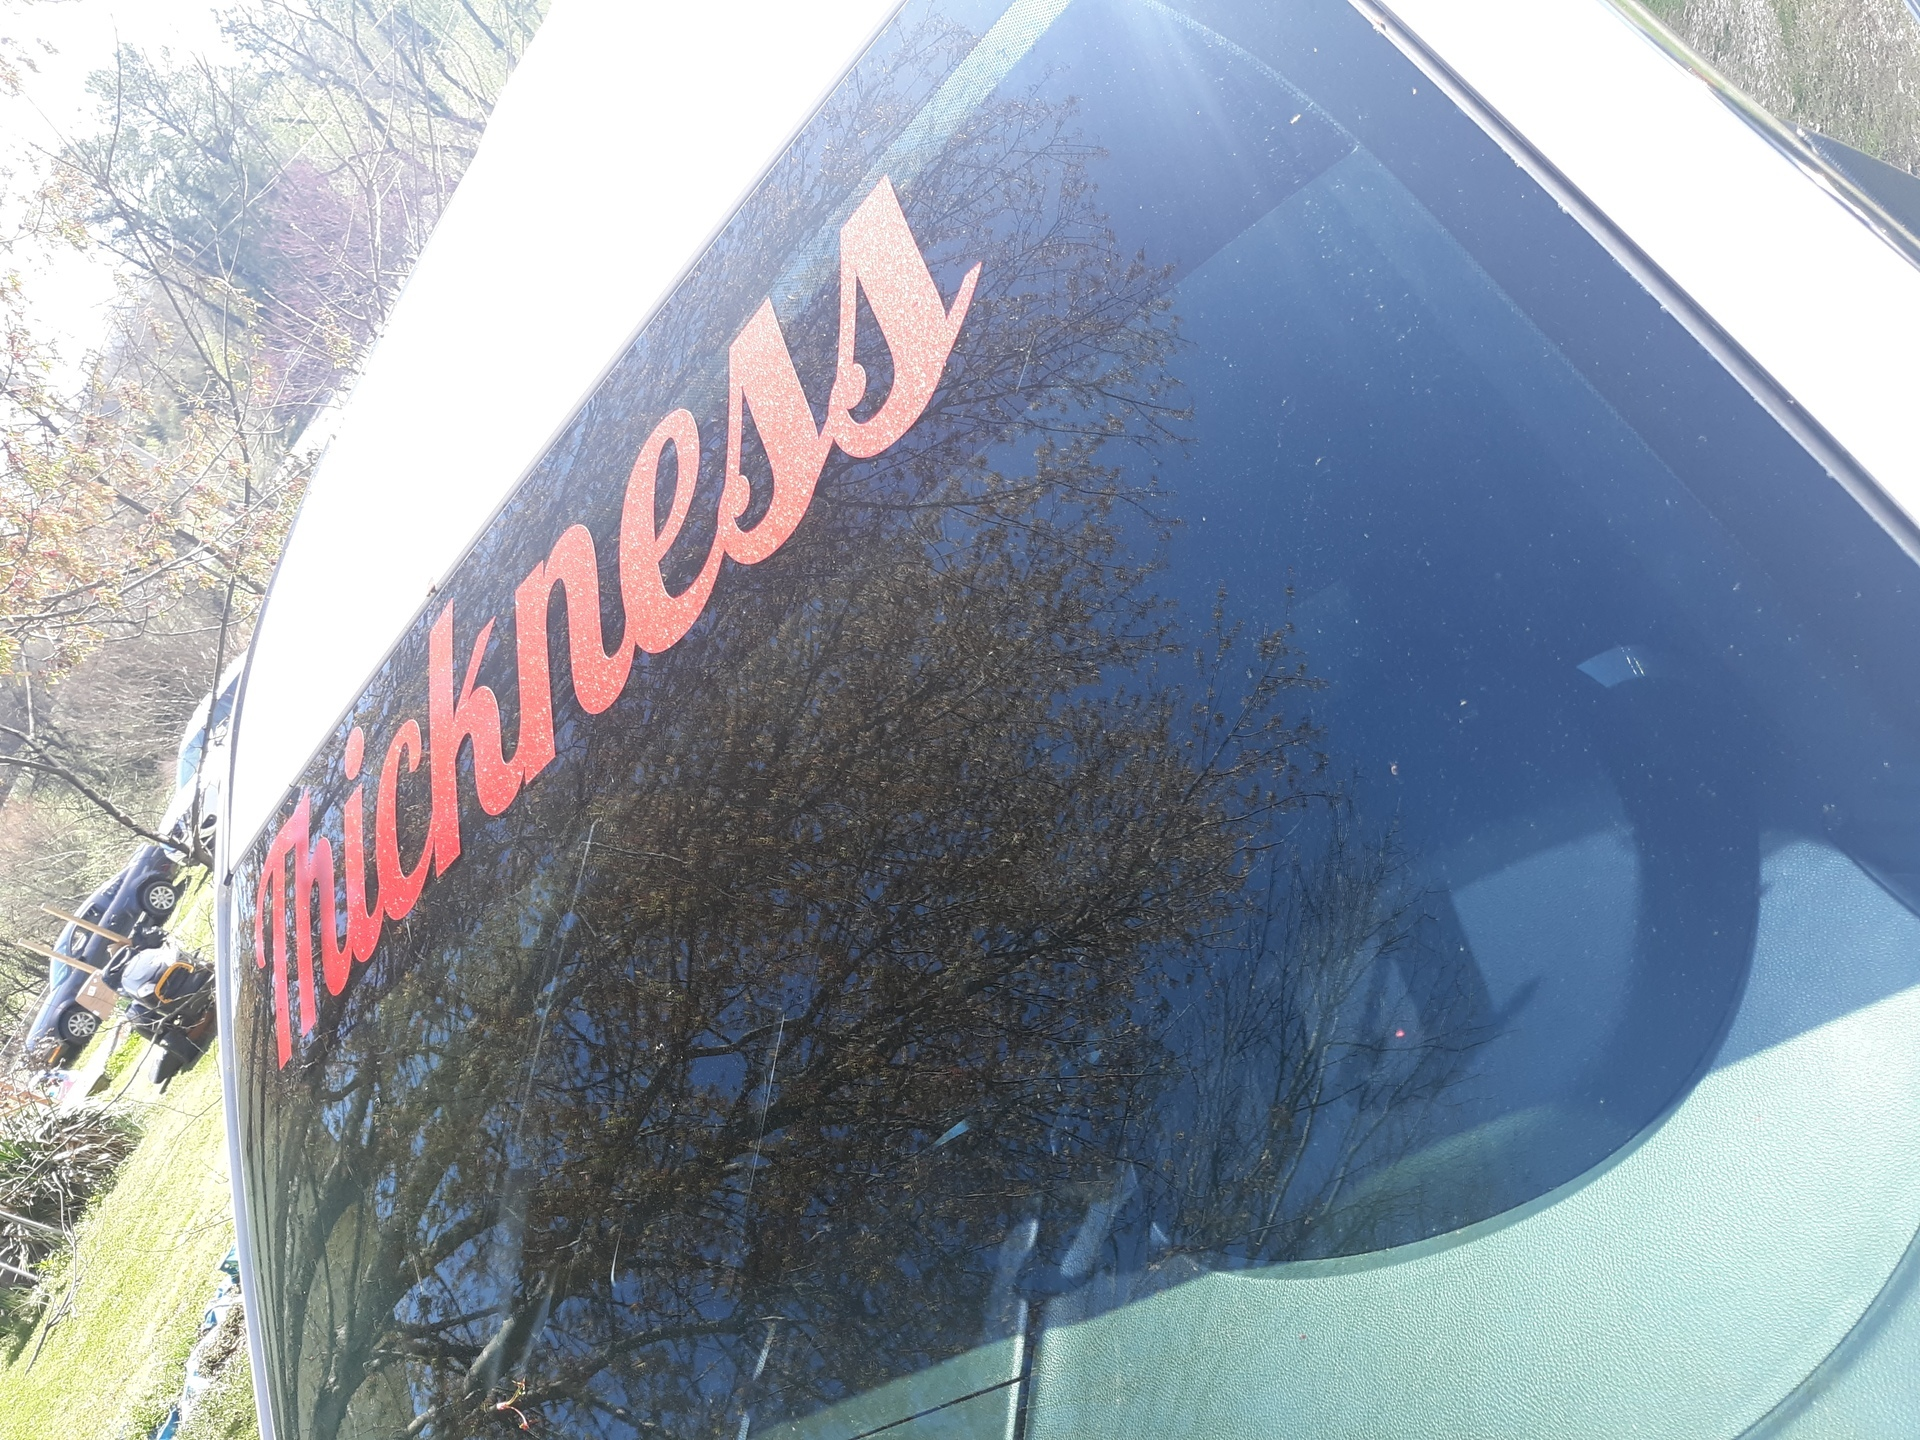 Taneshea's photograph of their Vinyl Lettering